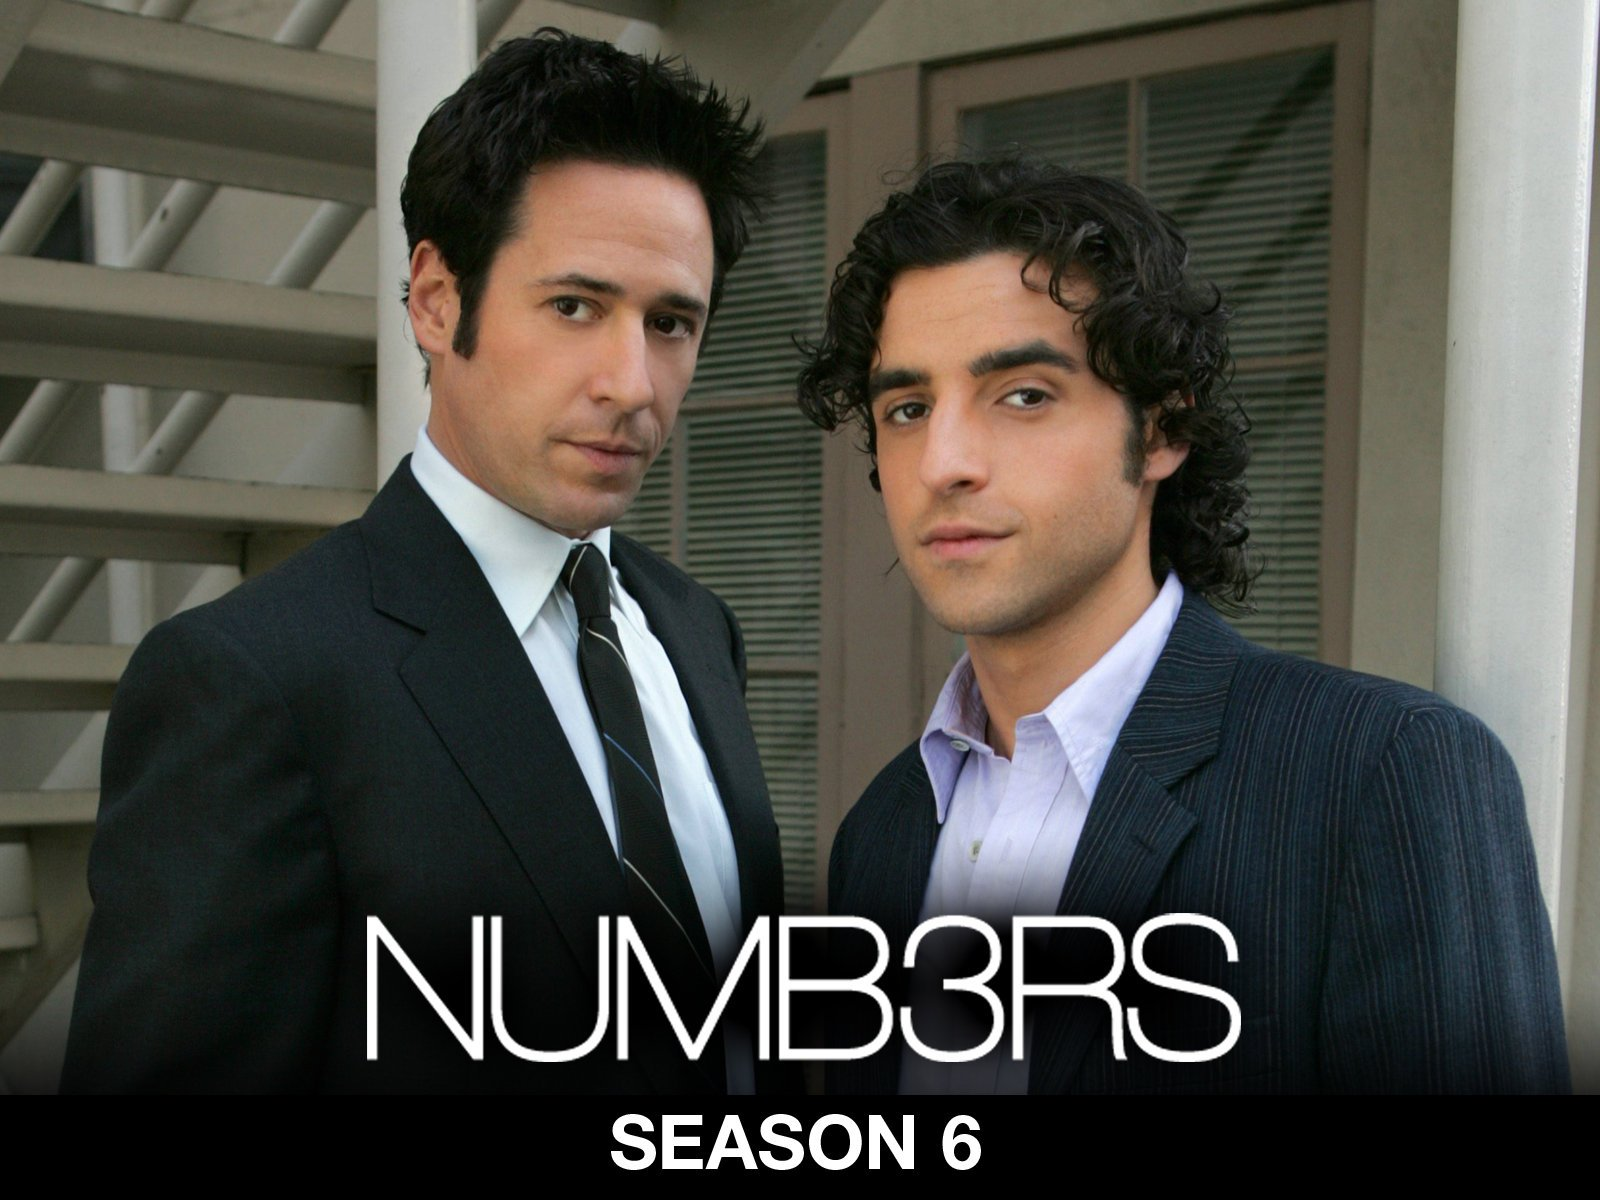 Rob Morrow, David Krumholtz are posing for a picture